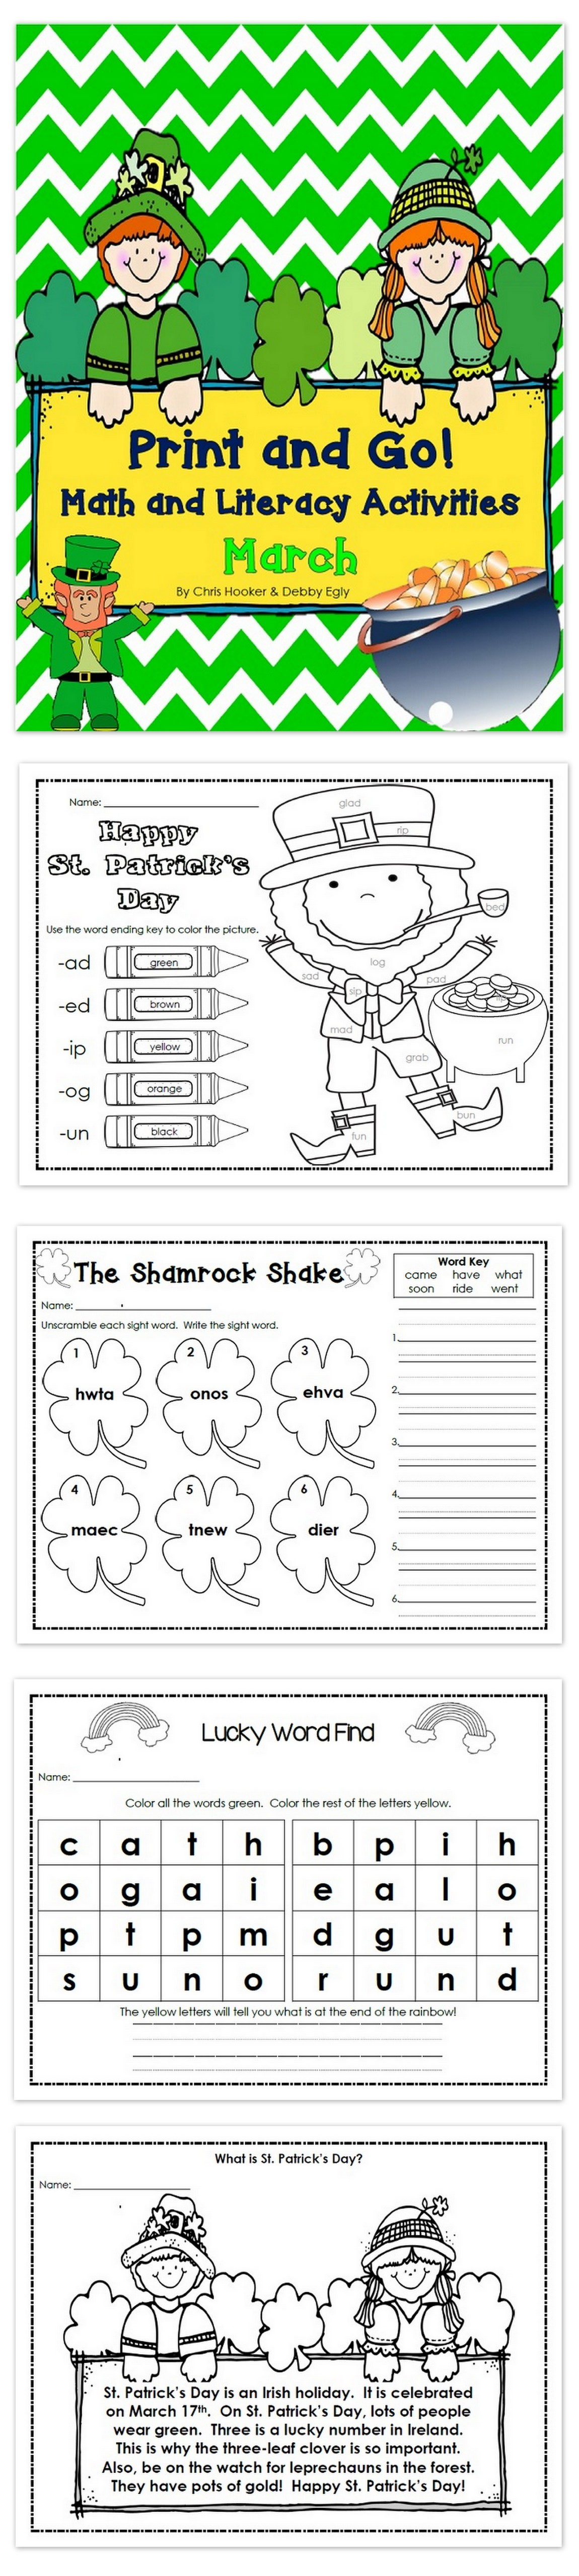 Print And Go March Math And Literacy Activities